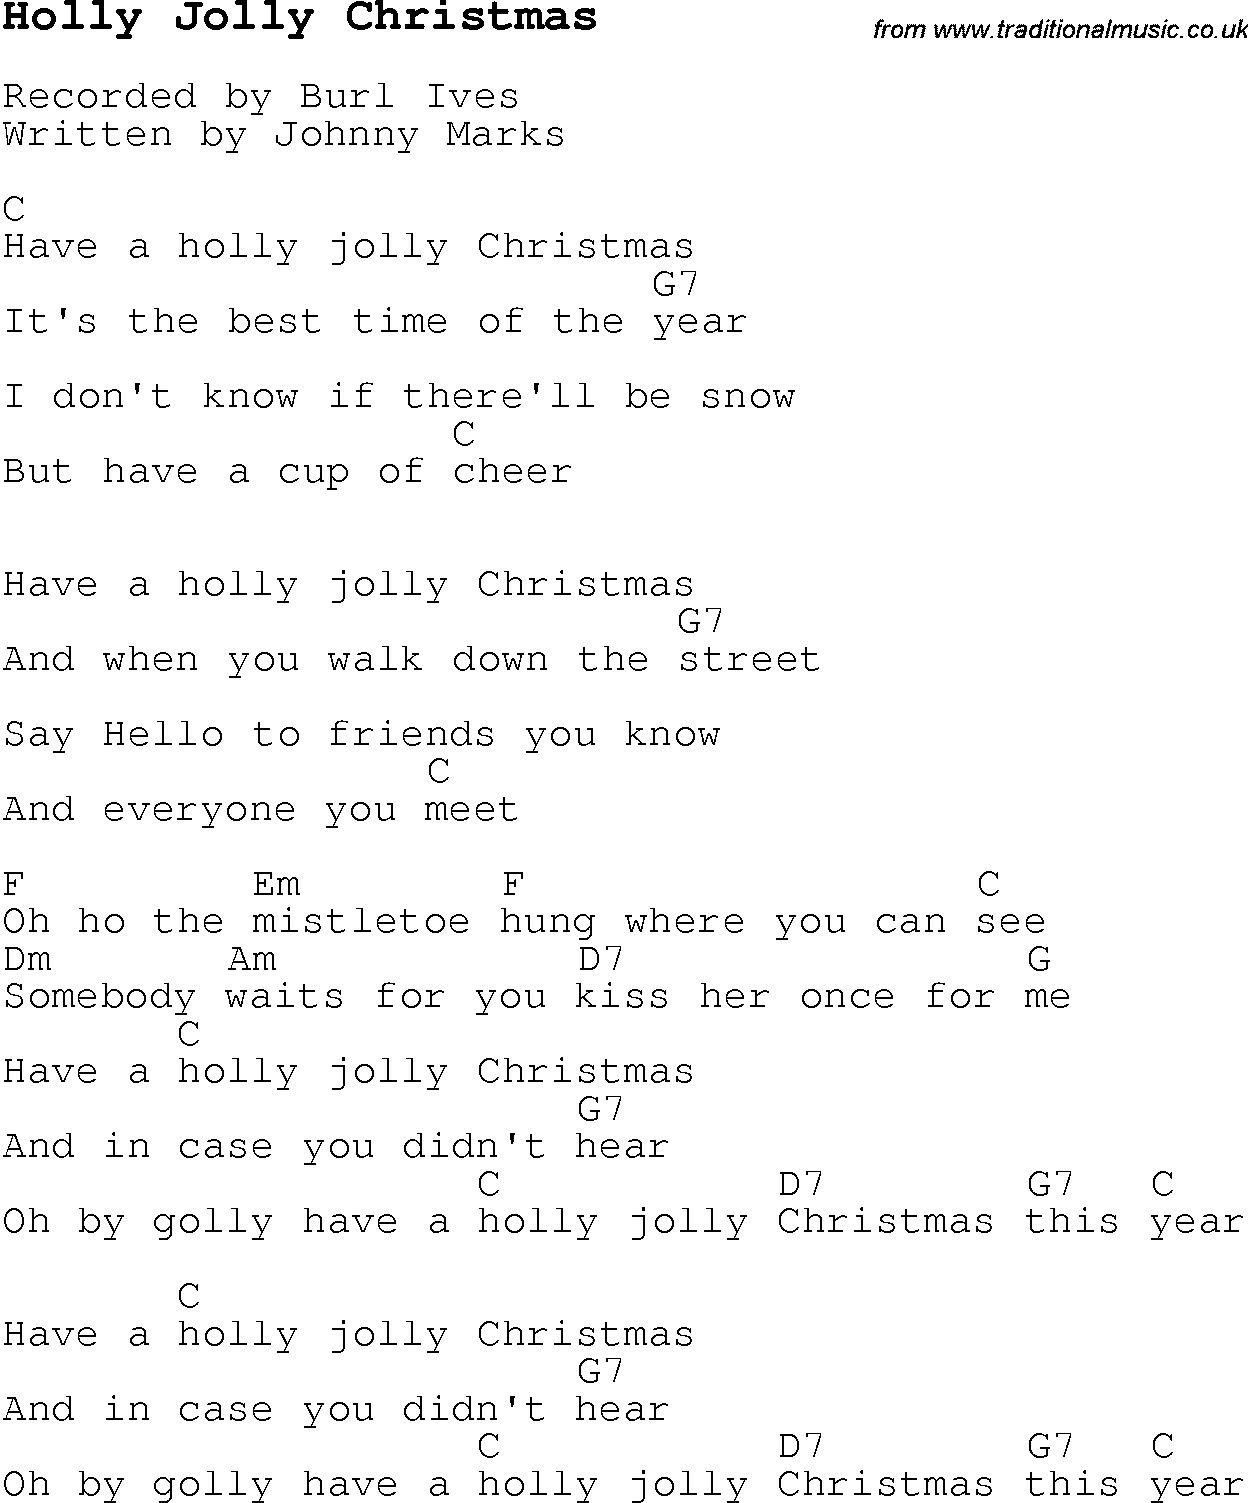 Pin by a cash on tabs pinterest guitars songs and christmas music christmas songs and carols lyrics with chords for guitar banjo for holly jolly christmas hexwebz Gallery